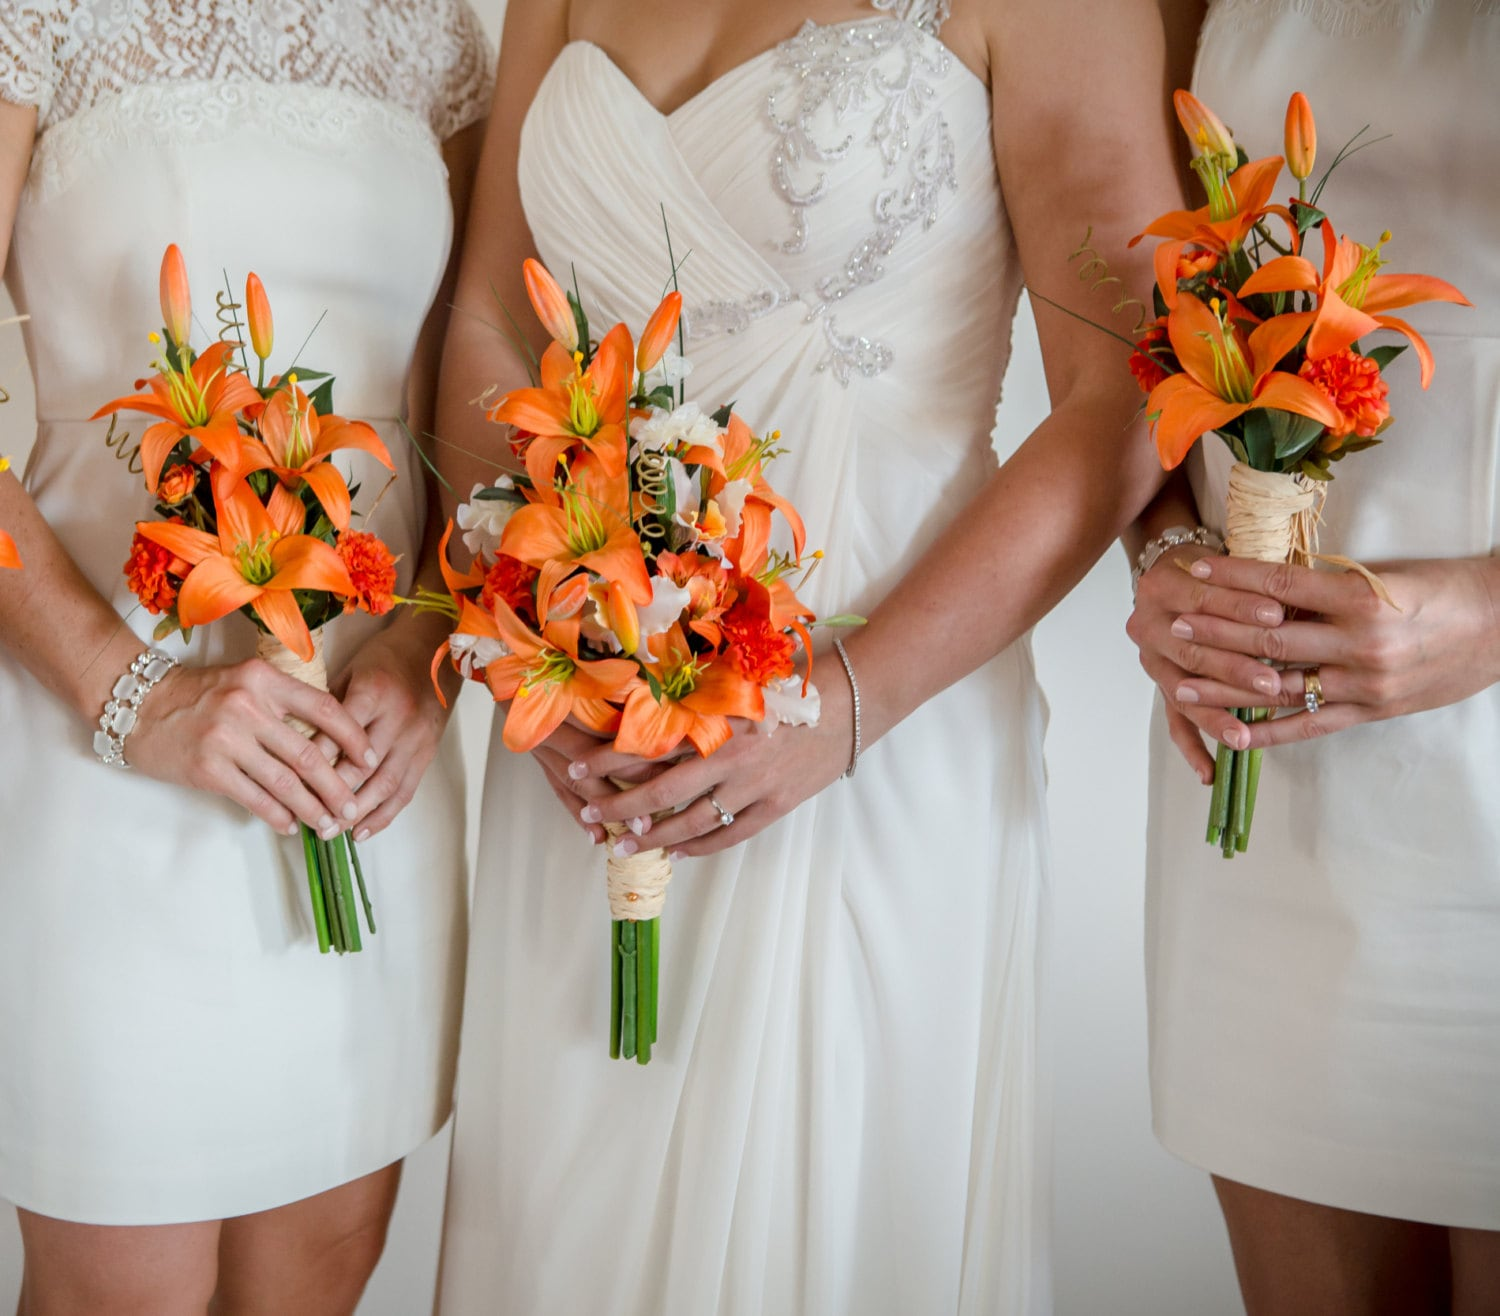 Lily Flower Wedding Bouquet: Destination Wedding Flowers Artificial Orange Tiger Lily